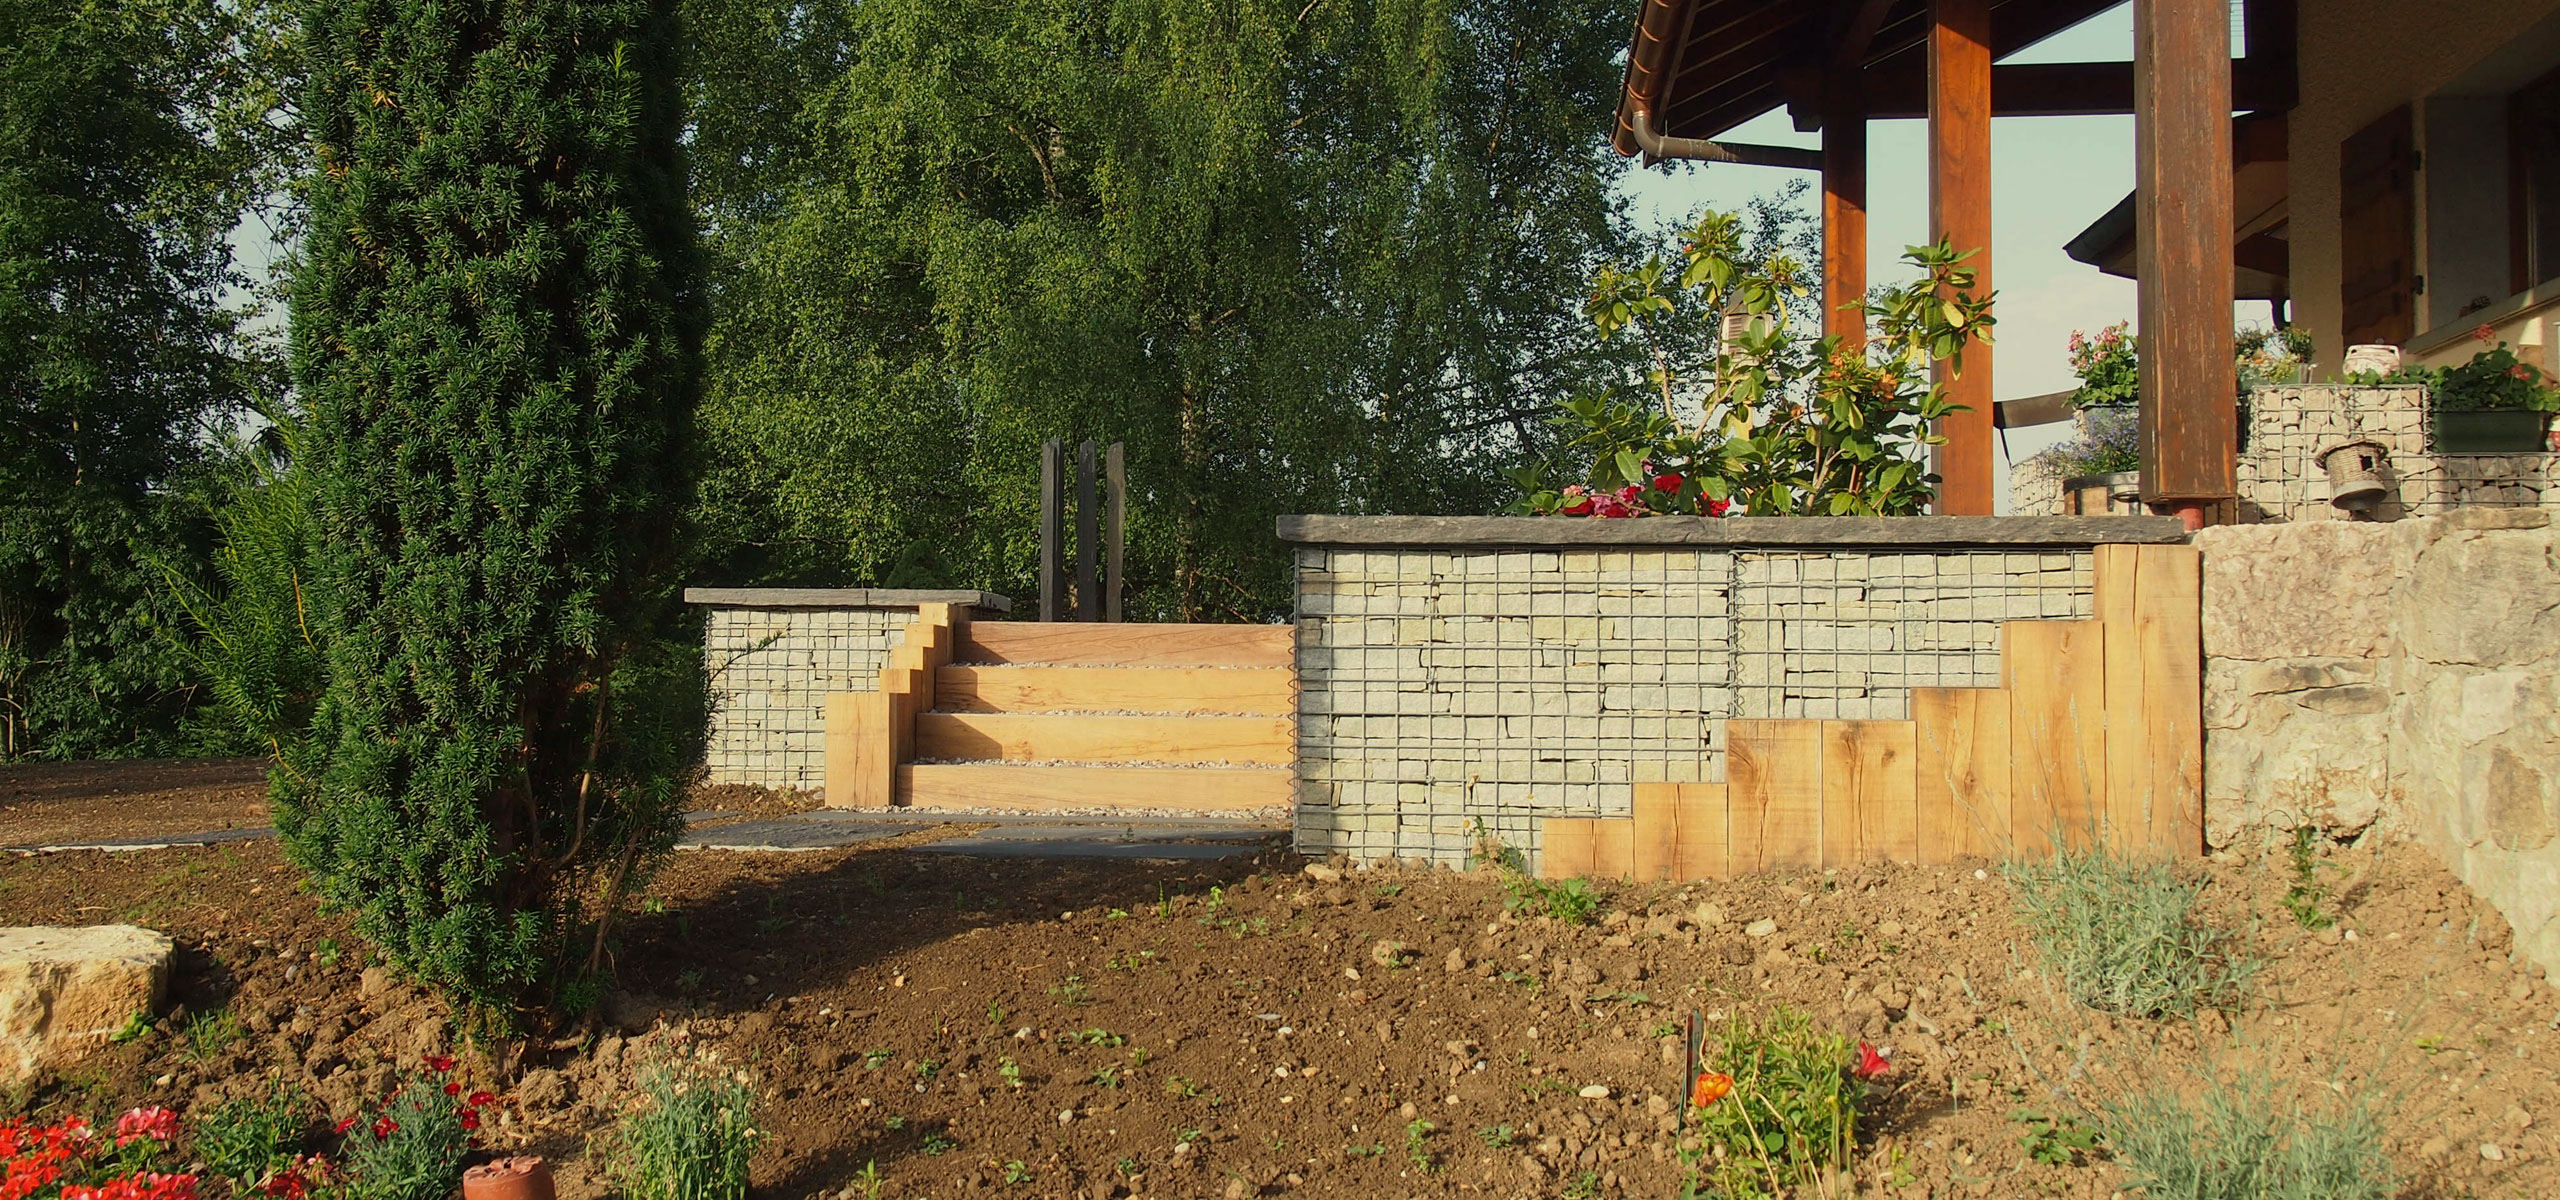 Am nagement ext rieur gabion condevaux for Amenagement exterieur 3d